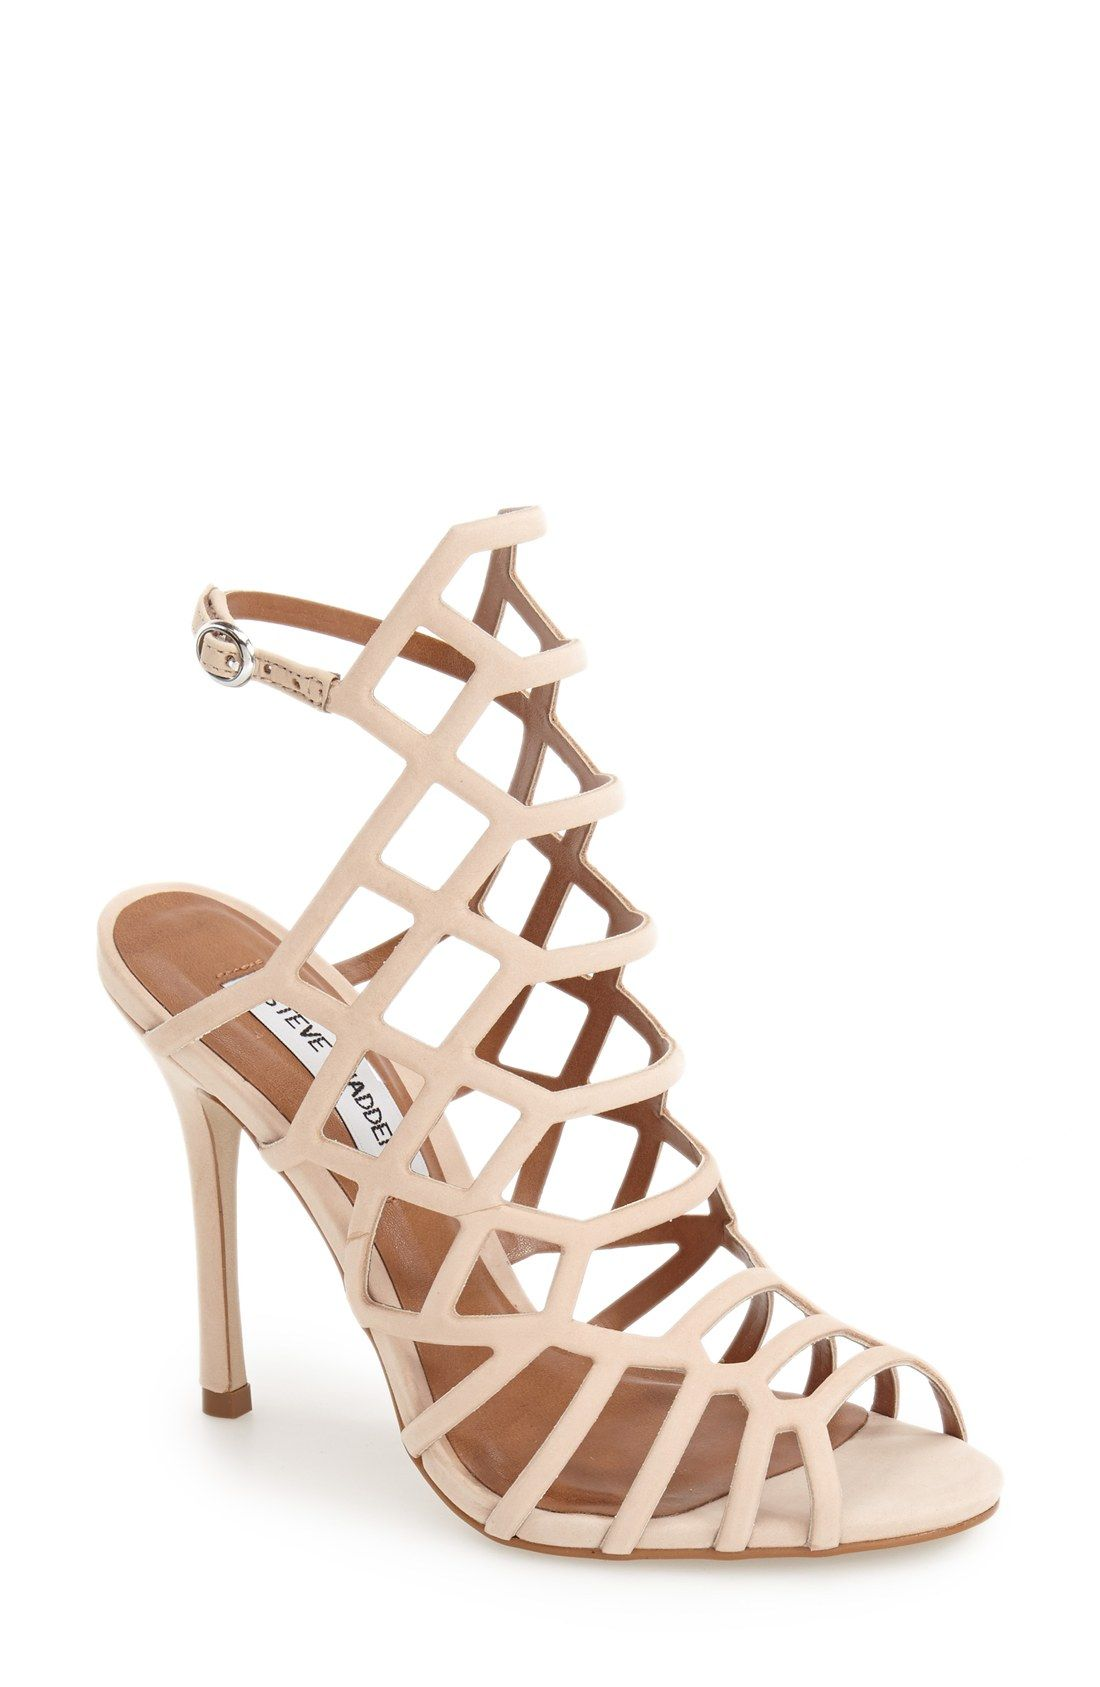 Steve Madden Shoes, Clothing, Bags & More | Nordstrom. Nude SandalsHigh  Heels ...